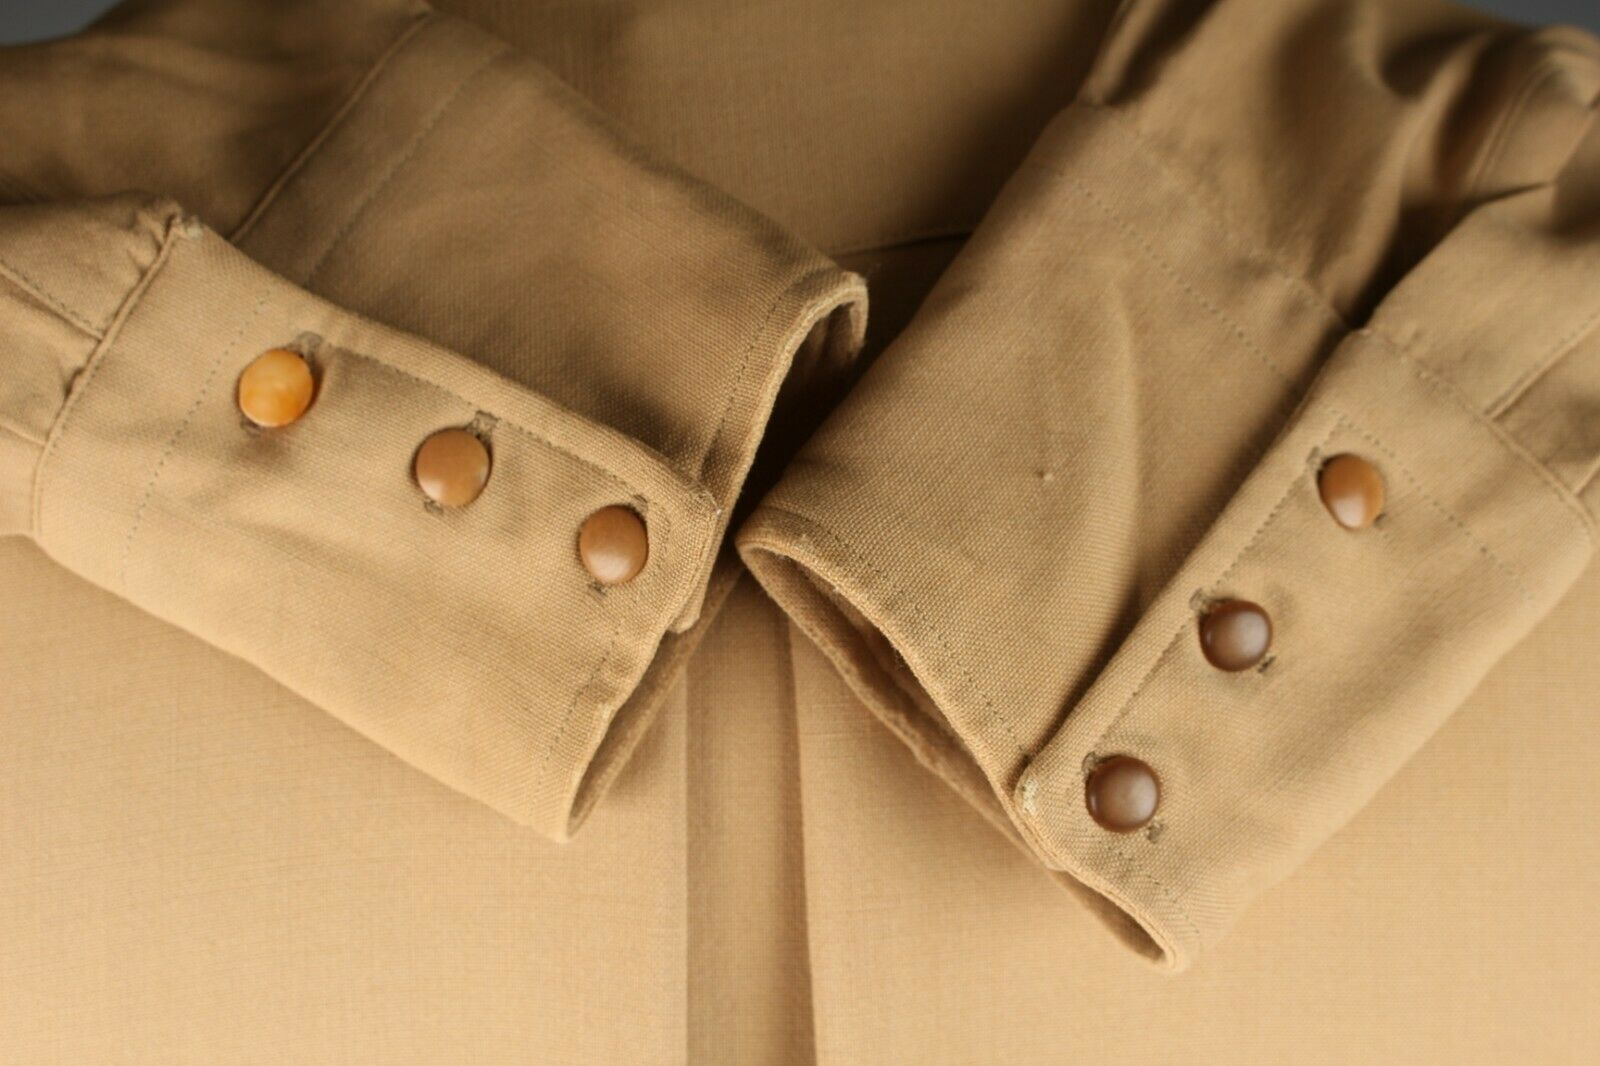 Shank buttons on early western shirts